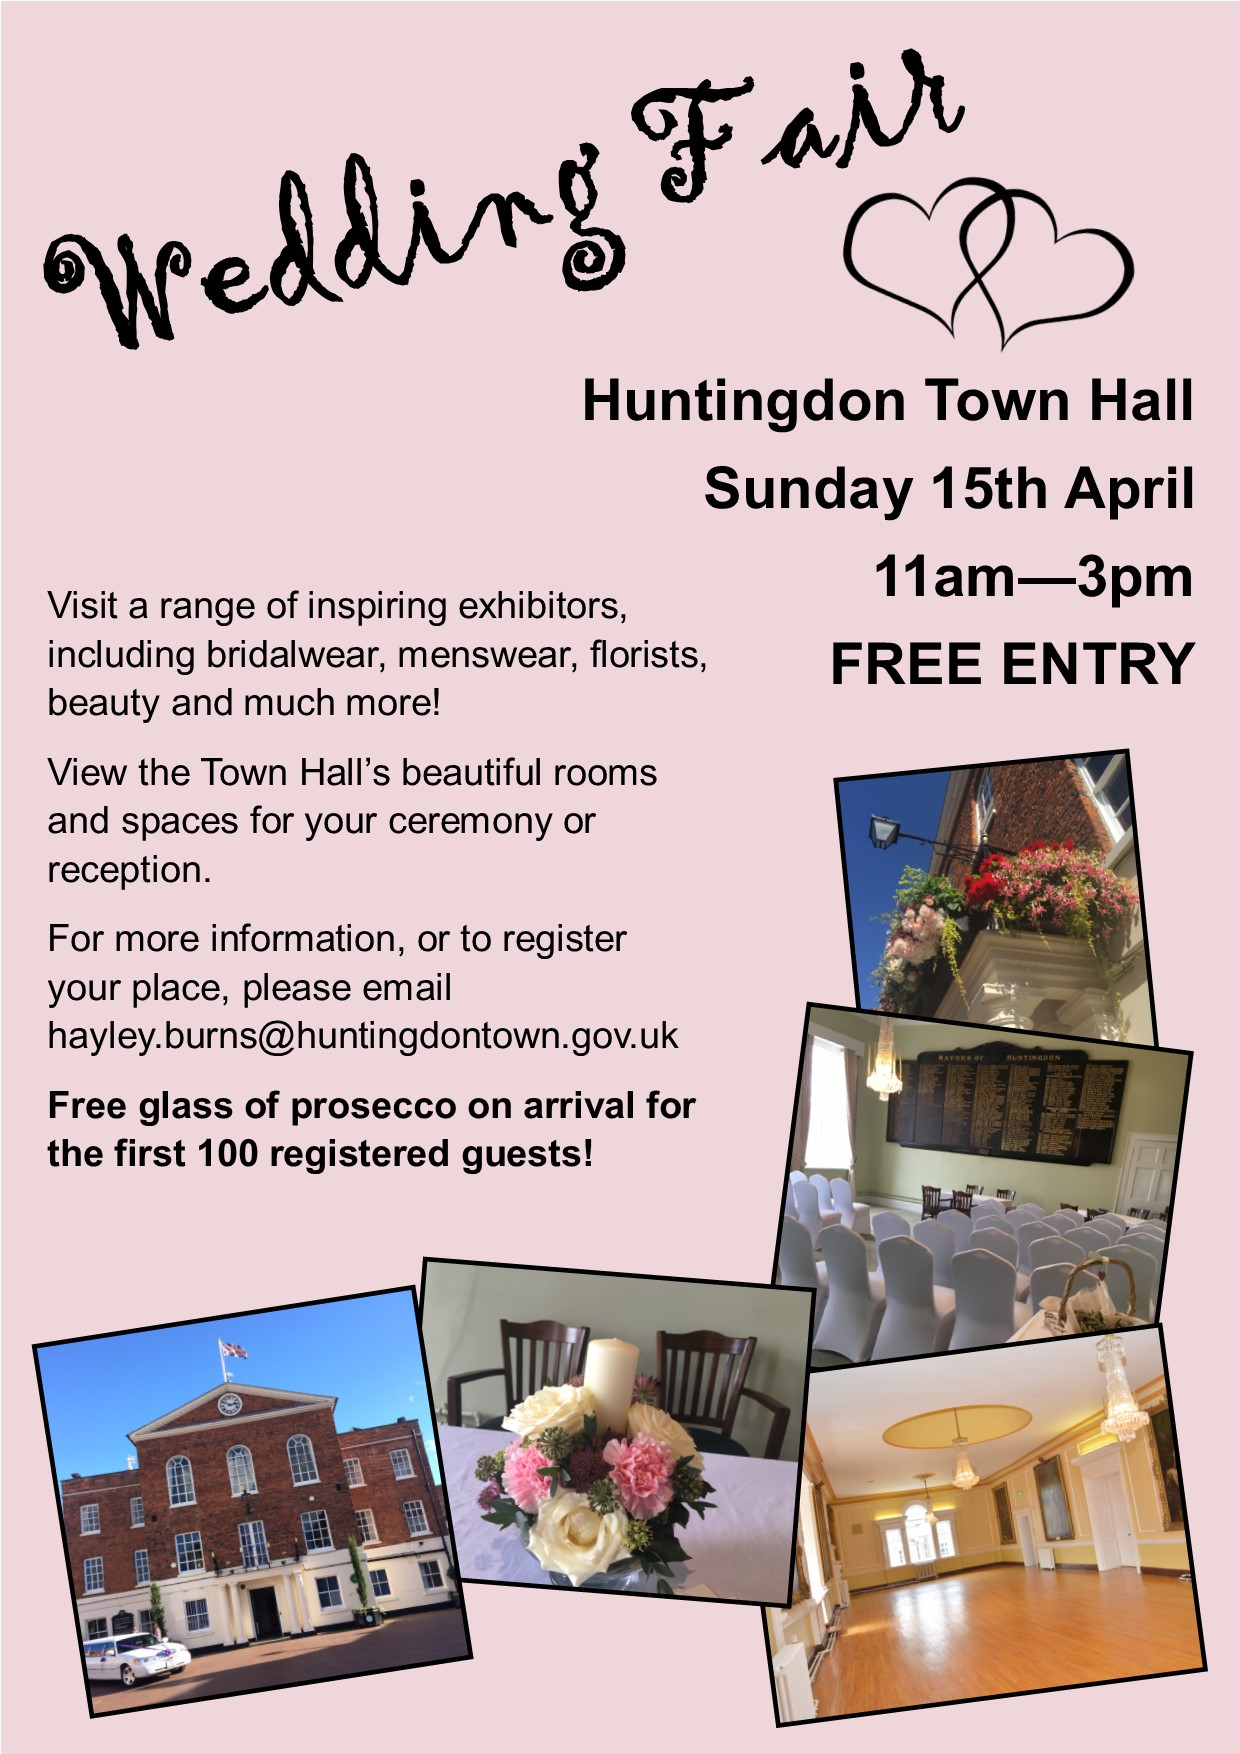 Wedding Fair - Sunday 15th April 2018